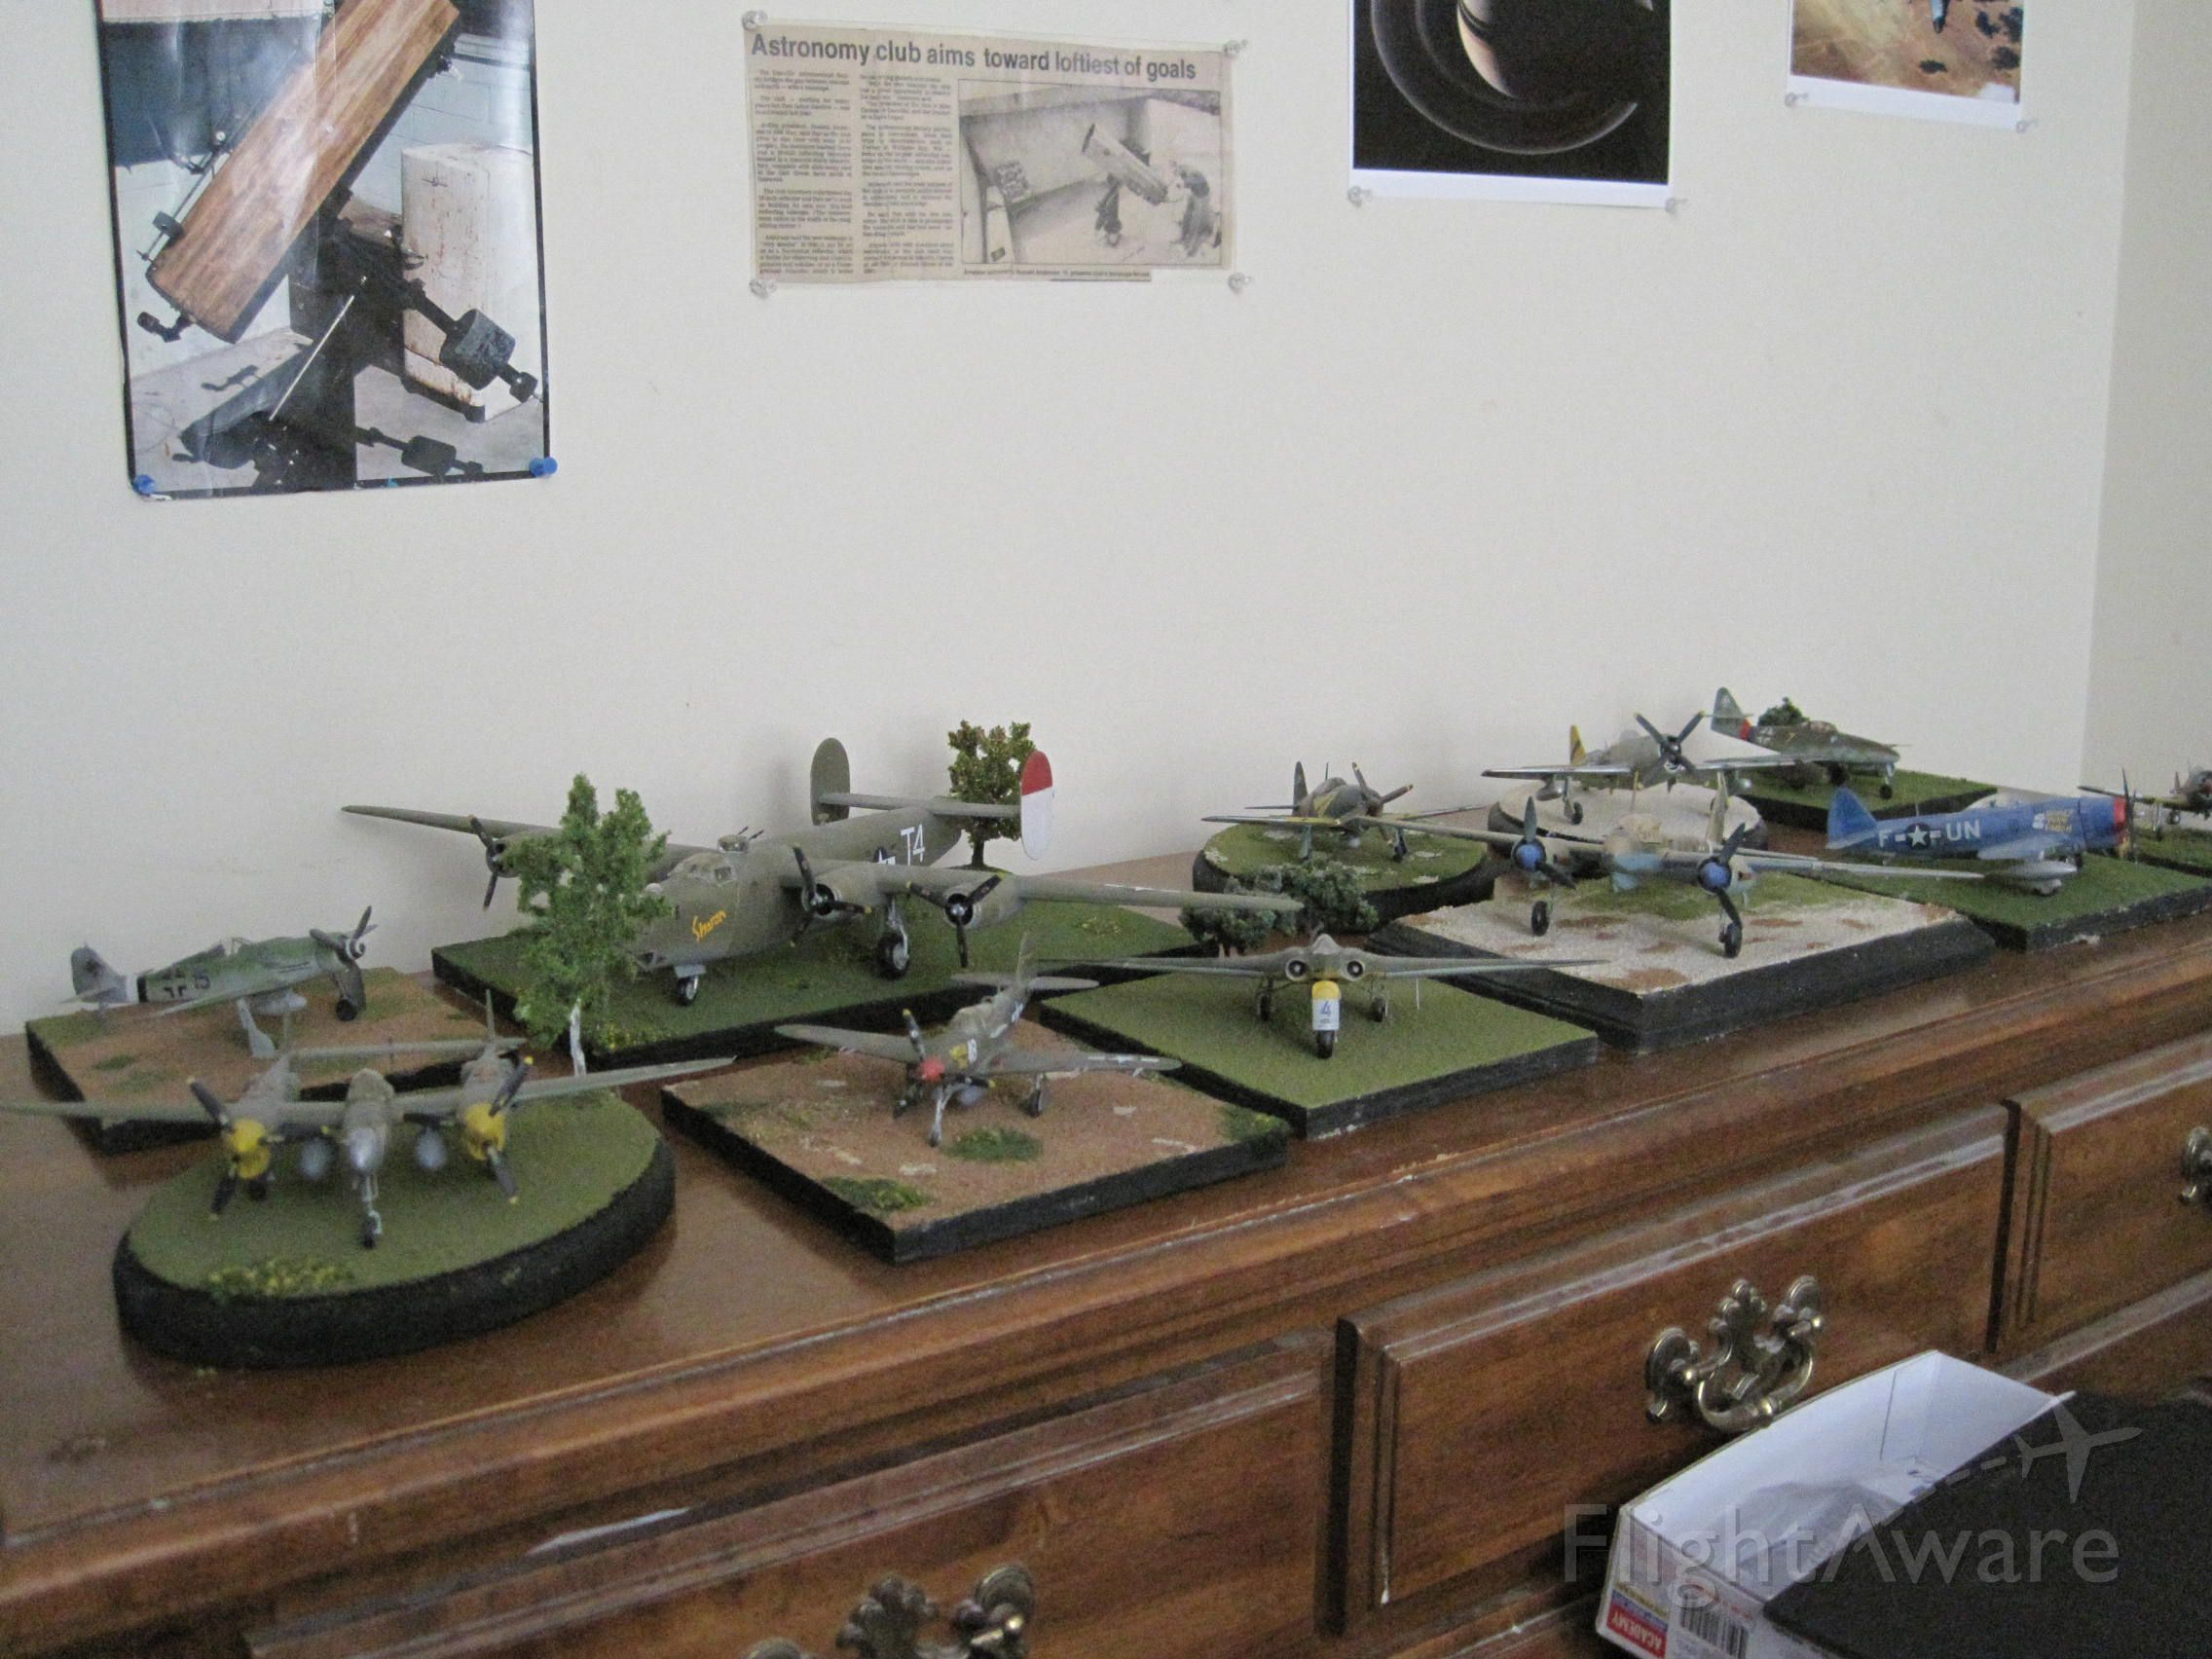 — — - A display area for some of my model aircraft.